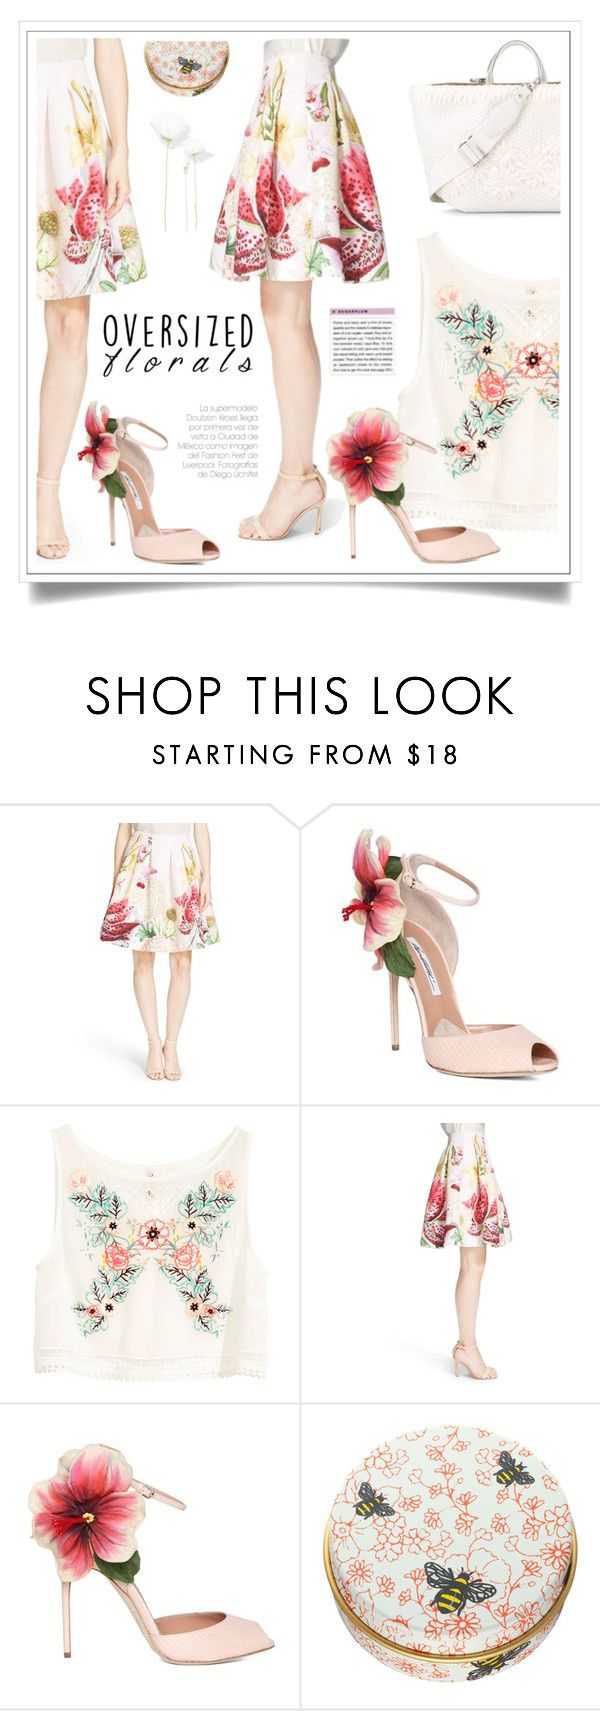 """""""Oversized Florals"""" by ewa-naukowicz-wojcik ❤ liked on Polyvore featuring Ted Baker, Brian Atwood, H&M, Paul & Joe Beaute, Ermanno Scervino and oversizedflorals"""